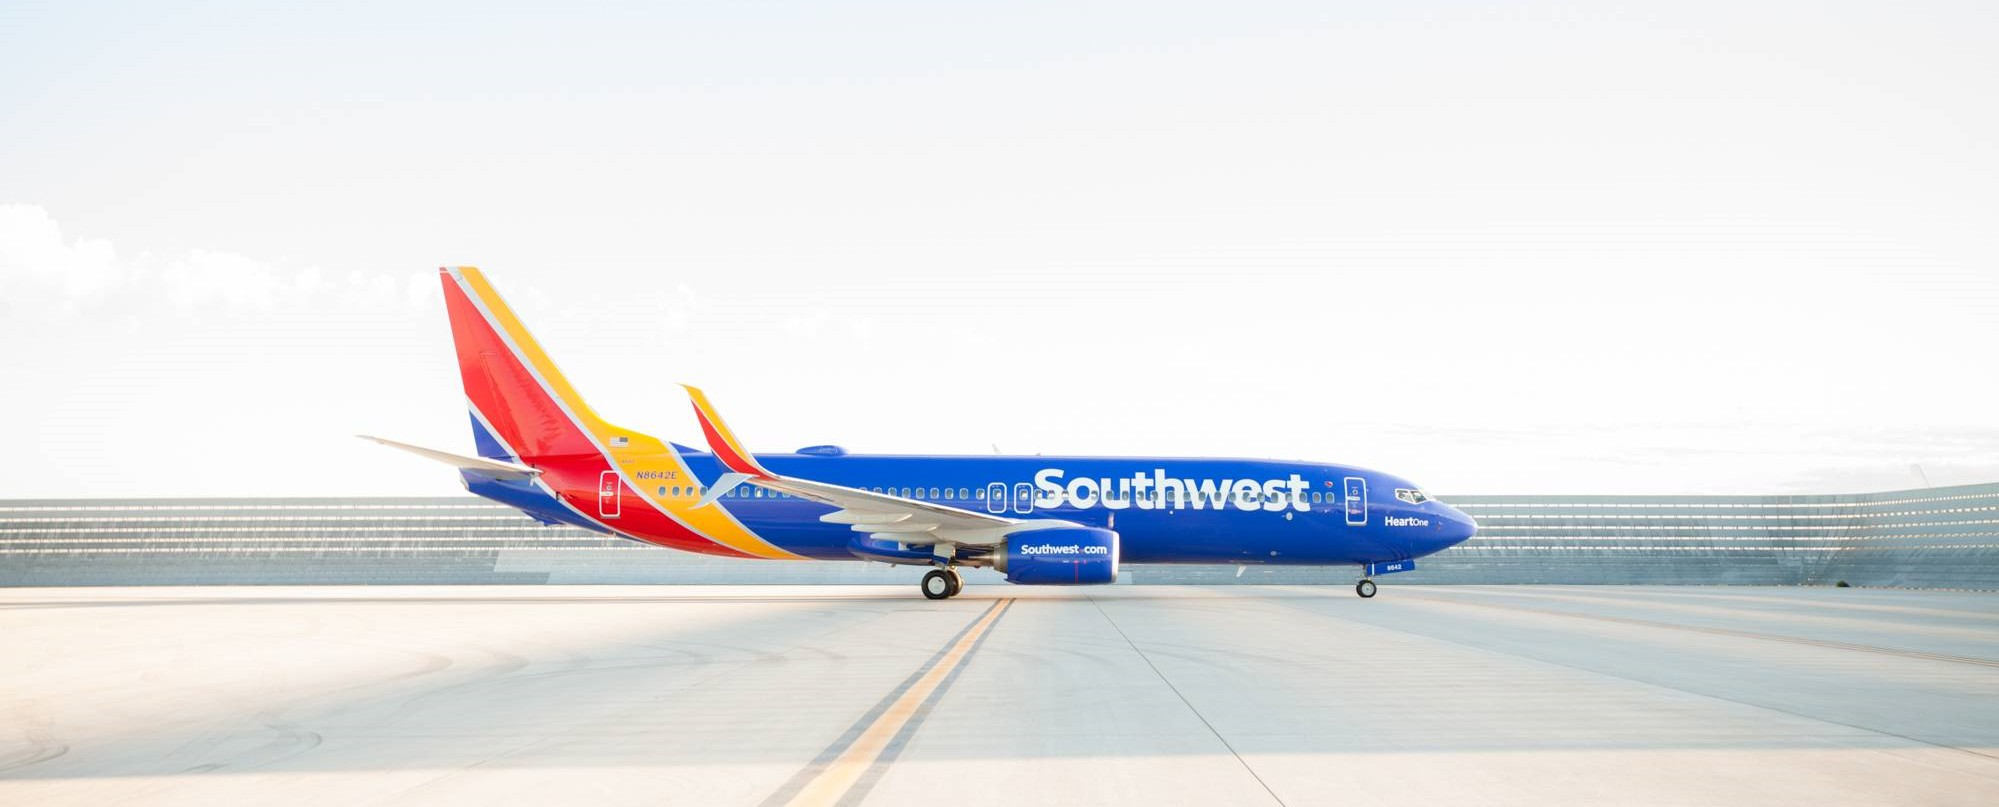 Southwest Airlines' Brilliant Marketing